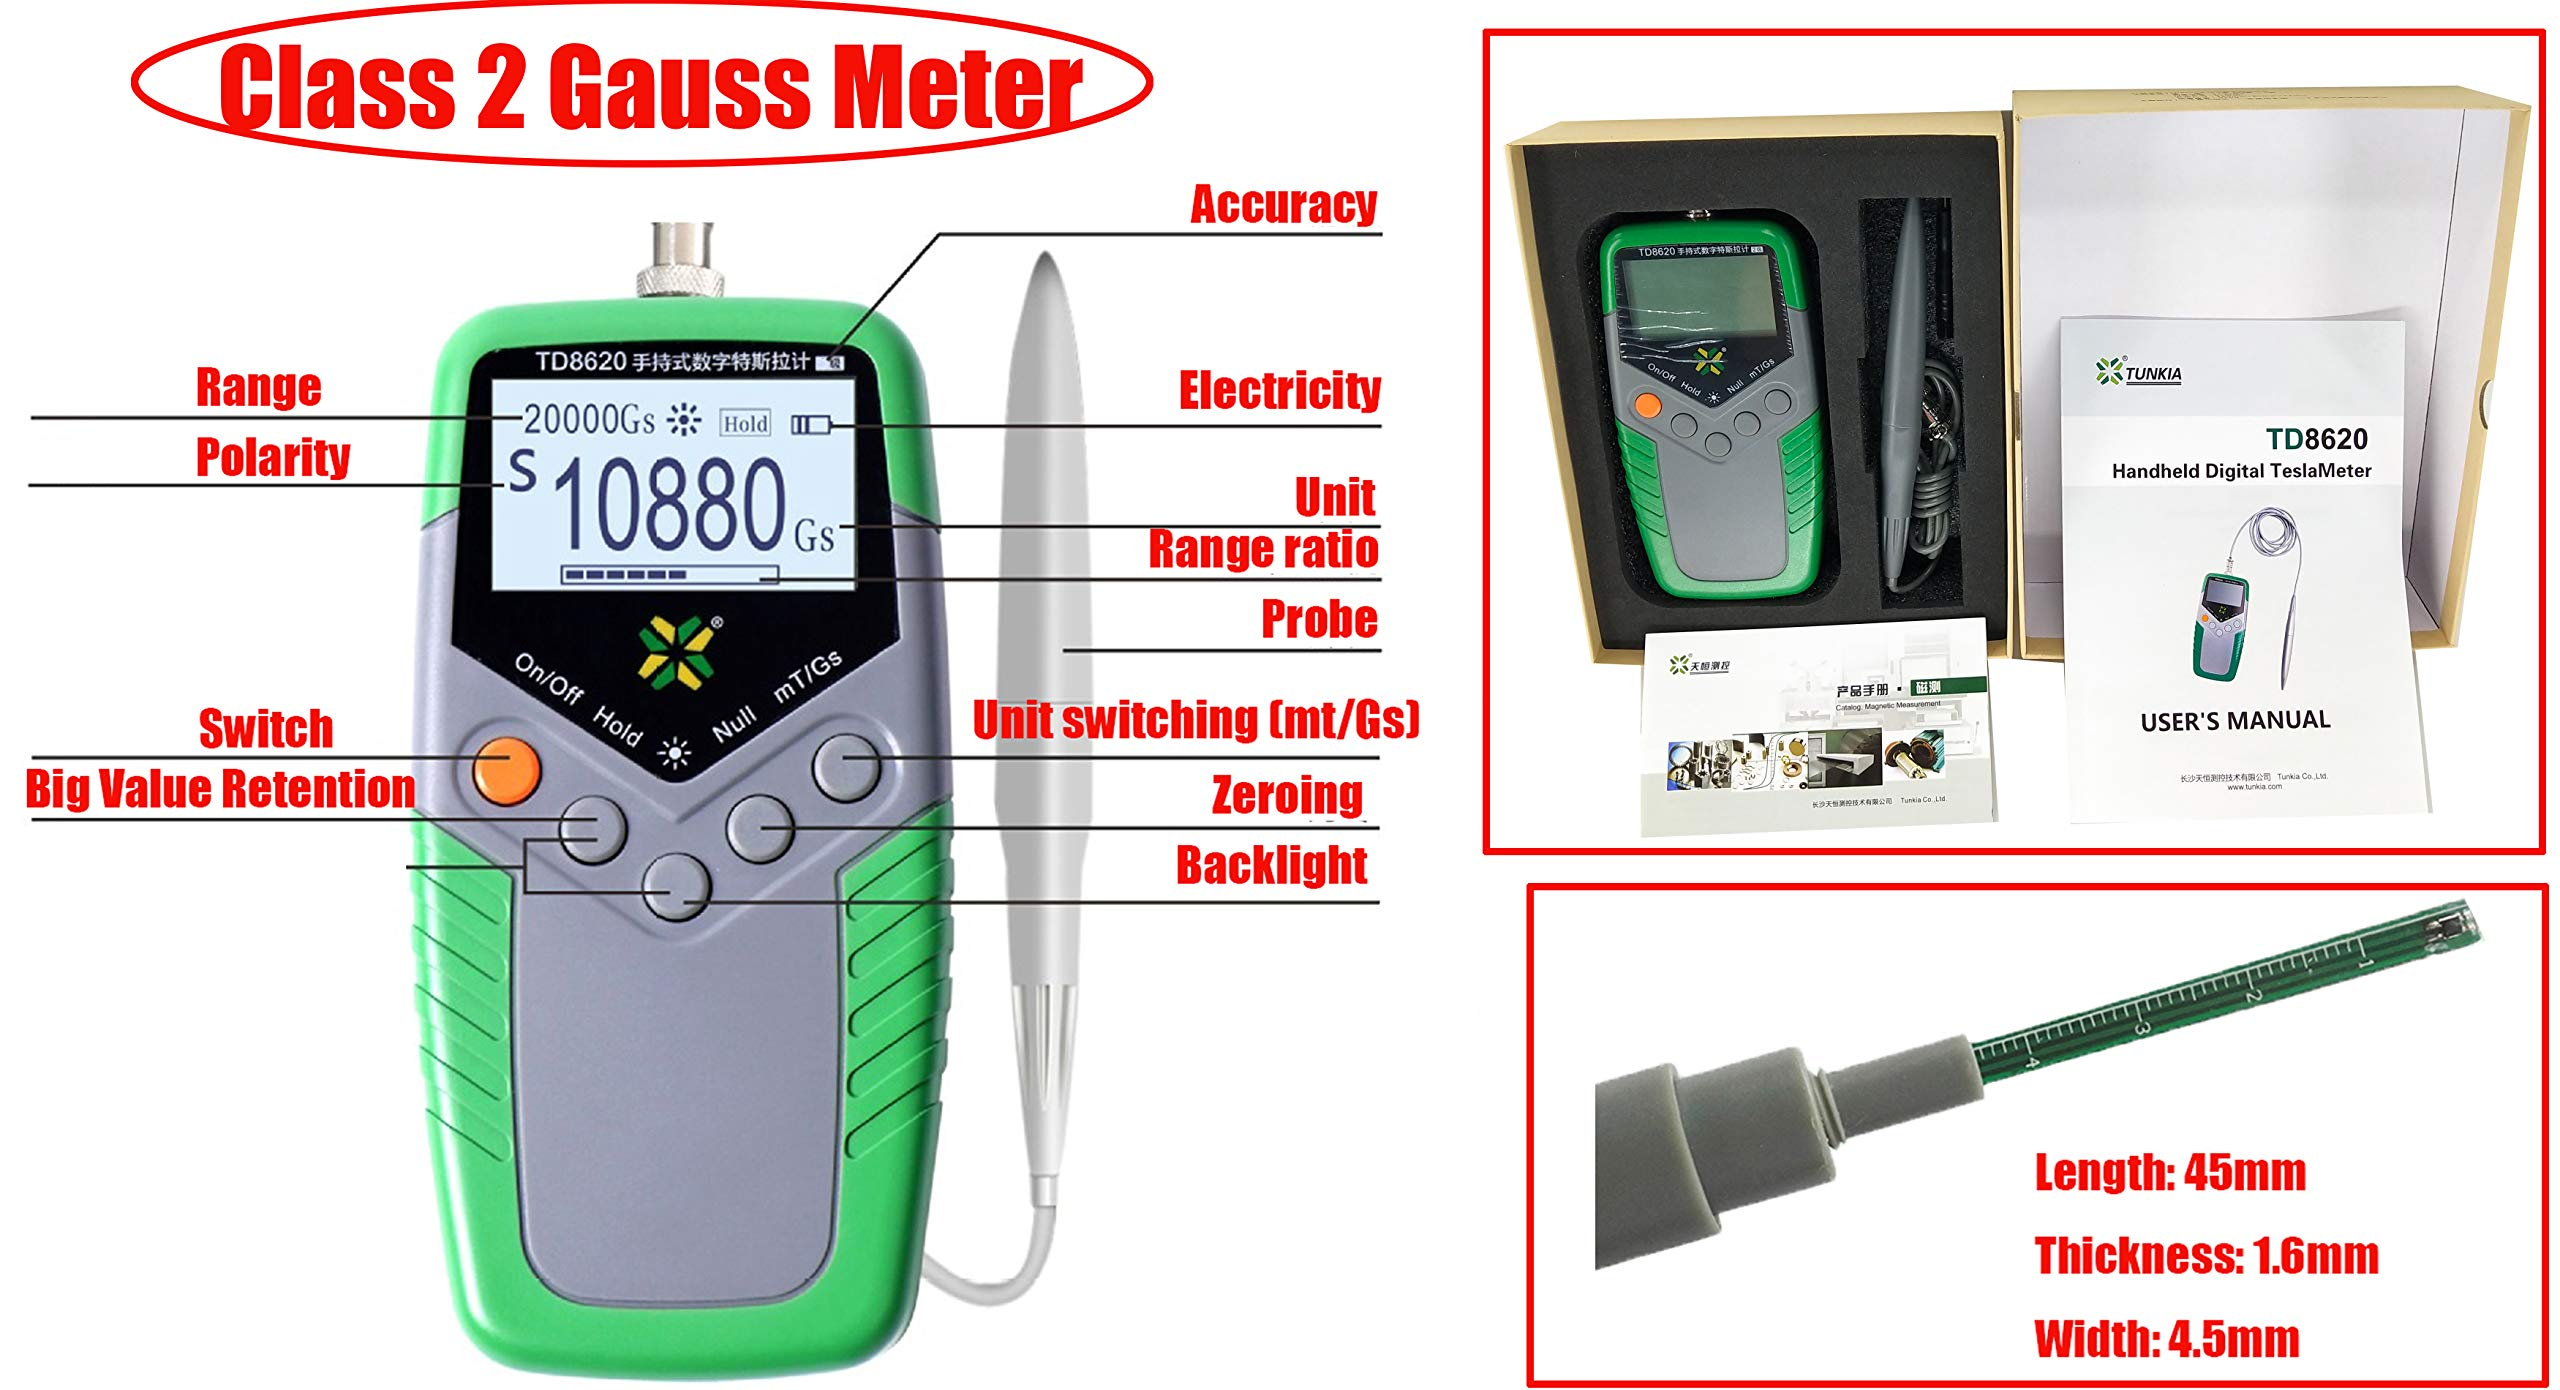 HFBTE TD8620 Permanent Magnet Gauss Meter Tesla Meter Gaussmeter with Class 2 Accuracy Surface Magnetic Field Tester